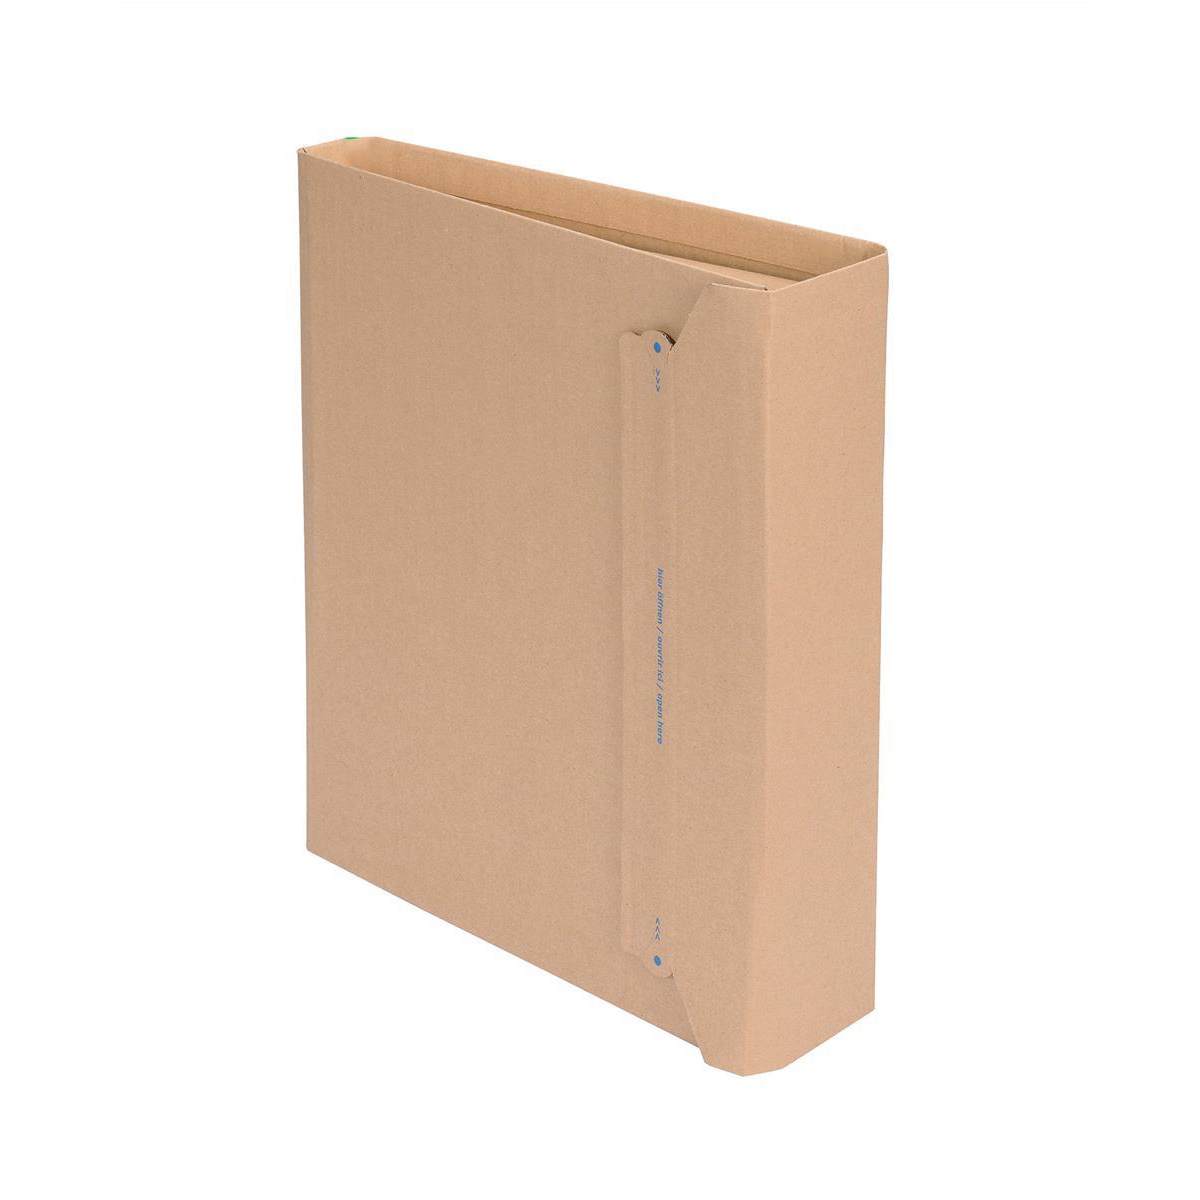 Packaging boxes Filepac Lever Arch File Mailer Internal W320xD35-80xH290mm Brown Pack 20